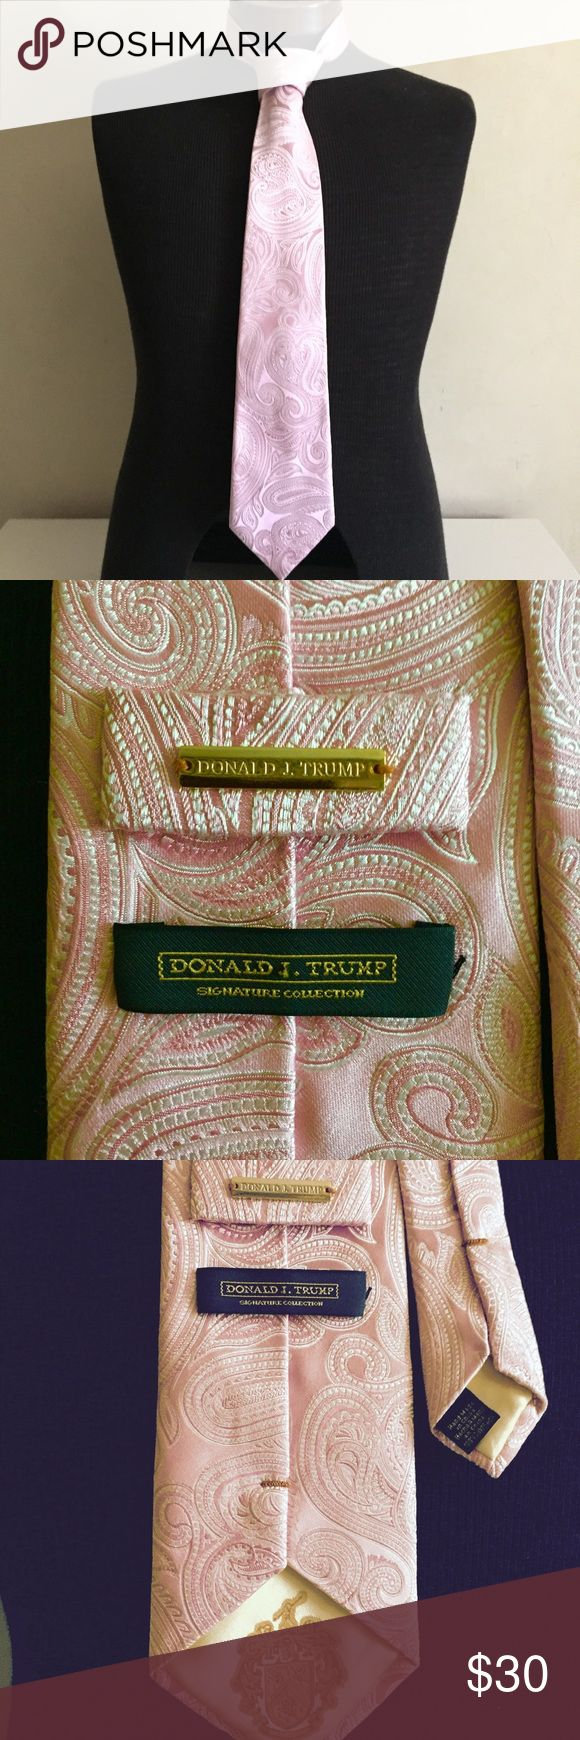 President 's Tie Donald J. Trump Signature tie. Worn only twice and in excellent condition with exception of slightly faded area (see last two pictures for reference) Selling this as a beautiful piece of man attire, So please don't start political discussion here. Accessories Ties